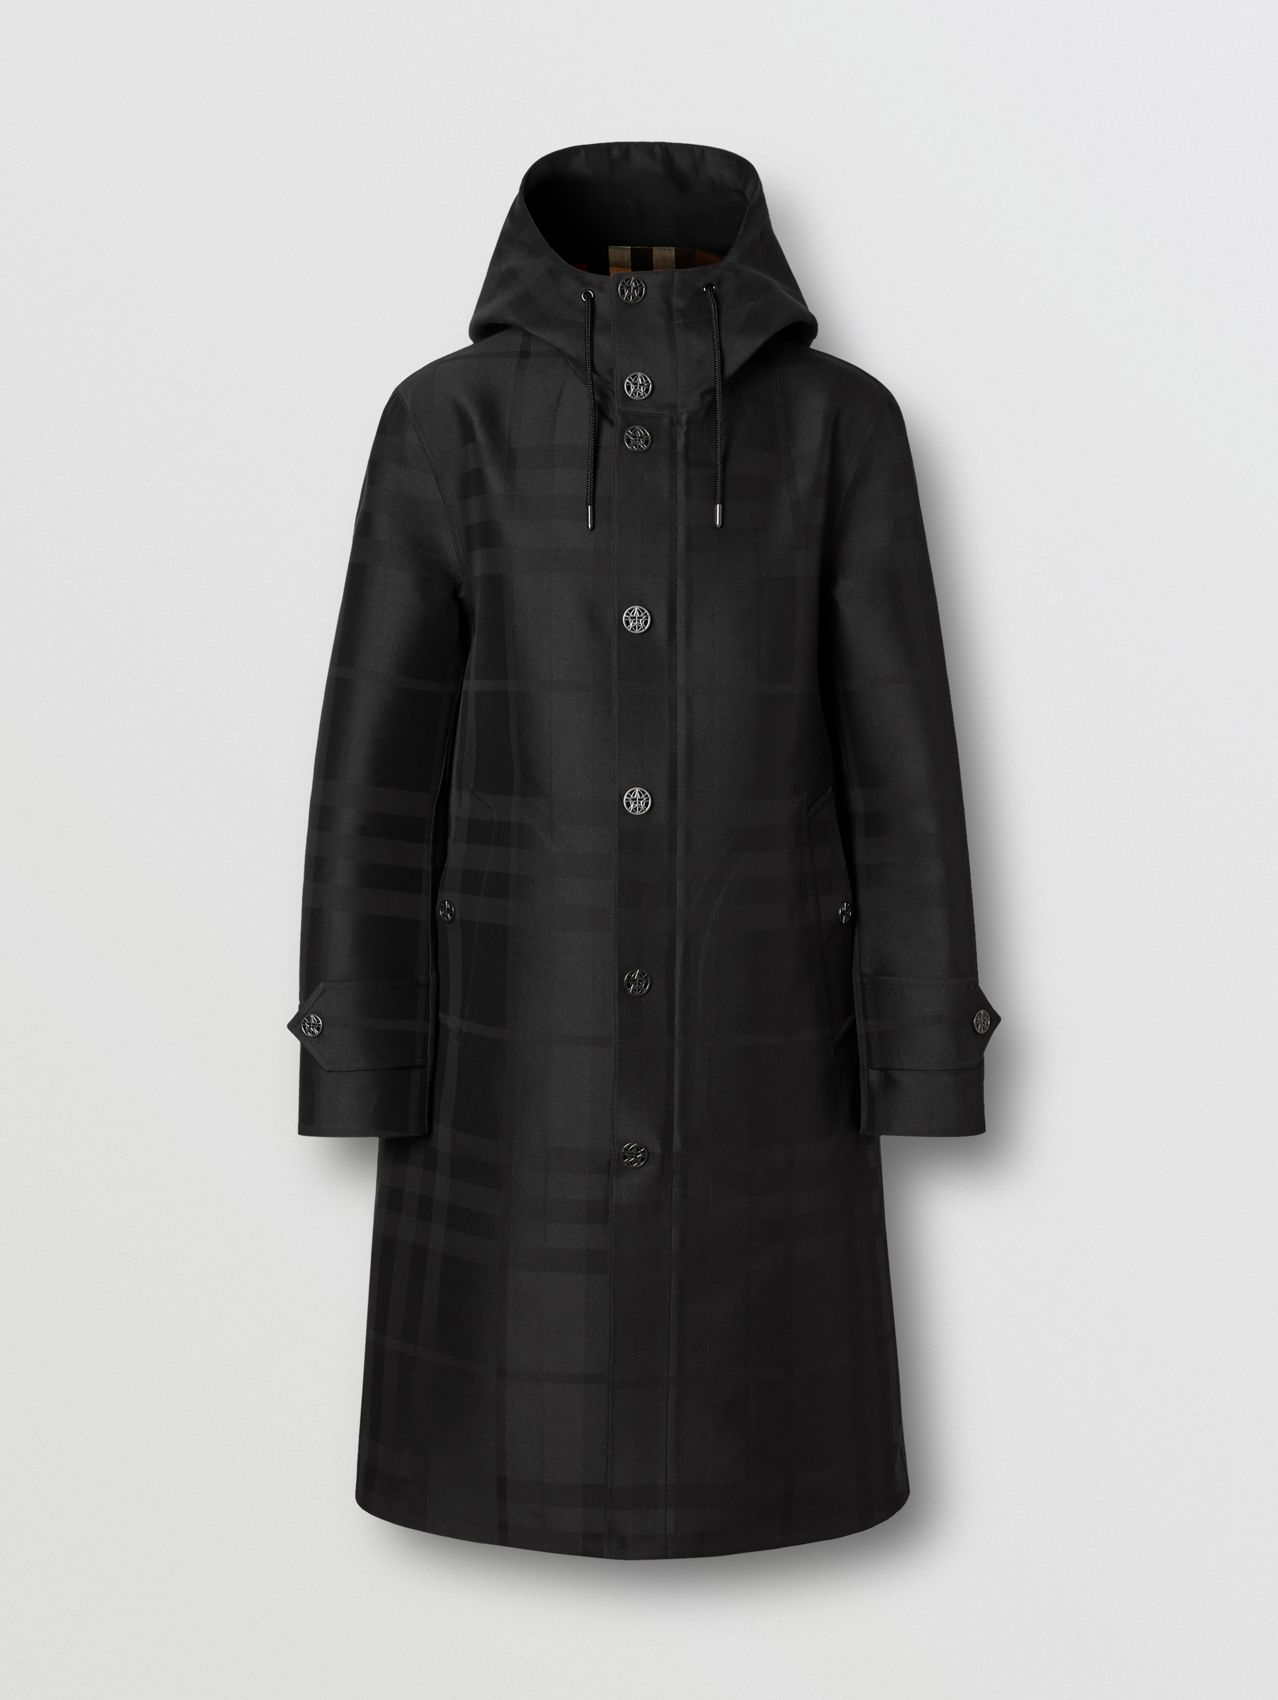 Globe Graphic Detail Check Technical Cotton Coat in Black